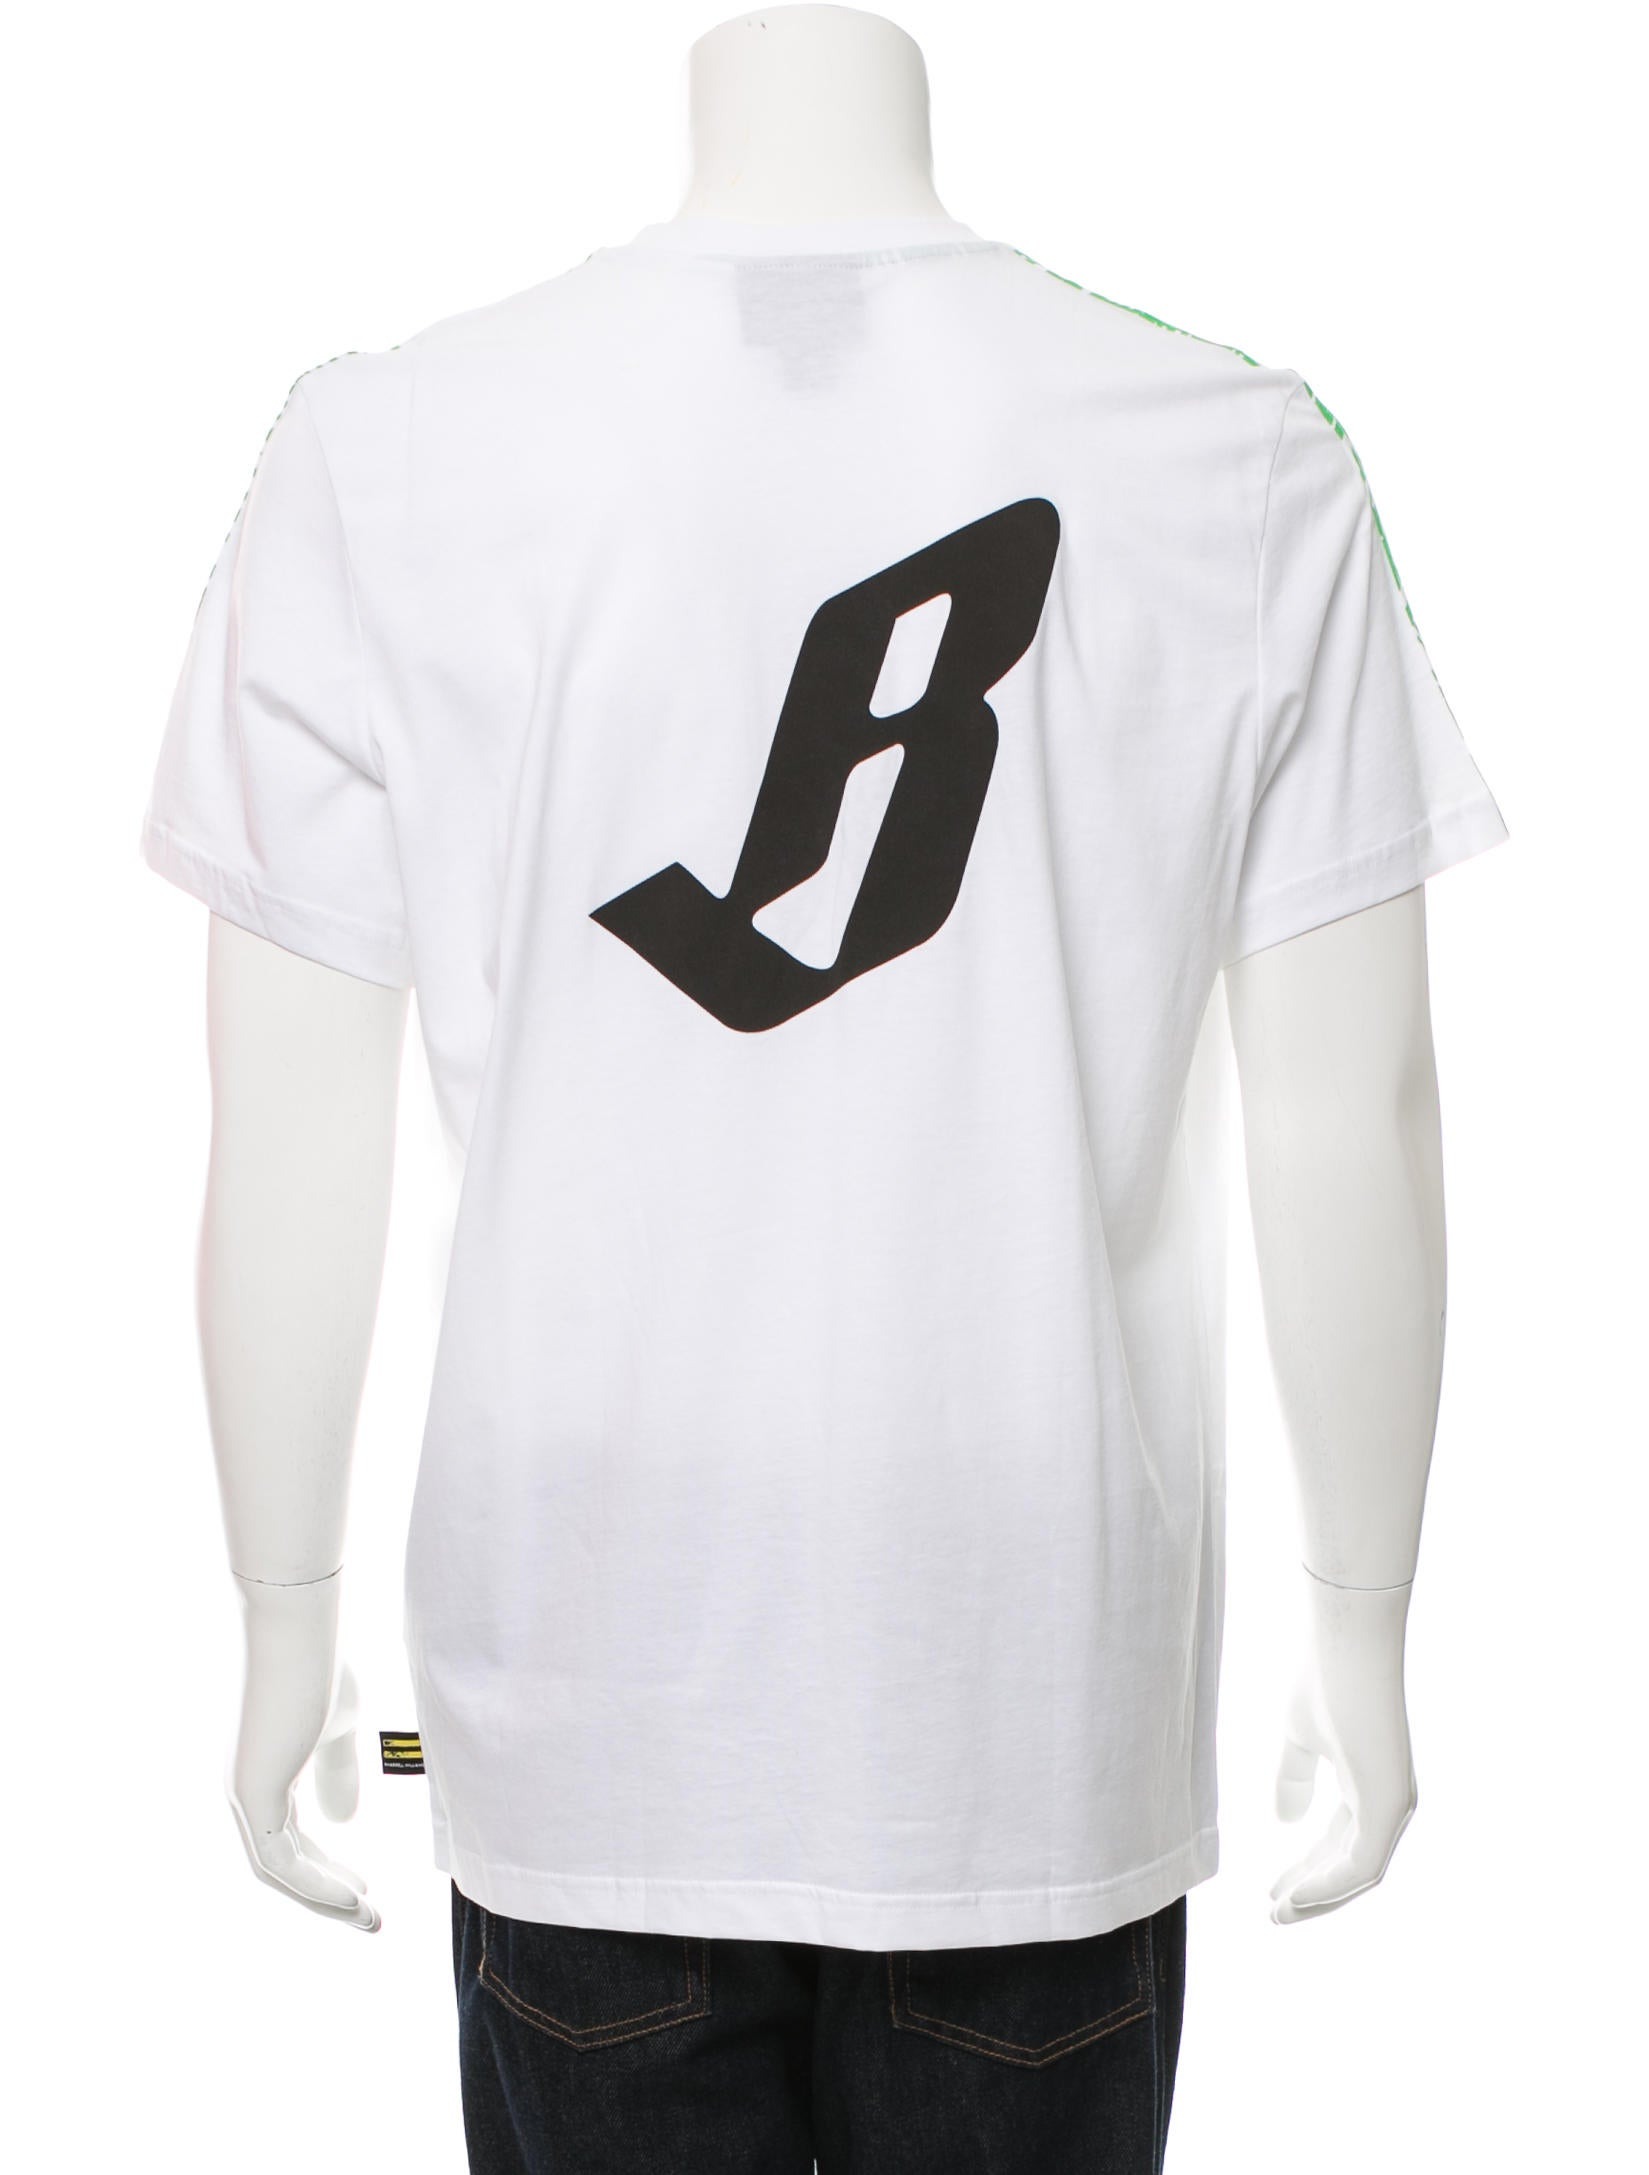 Adidas logo embroidered leaf print t shirt clothing for T shirt logo embroidery